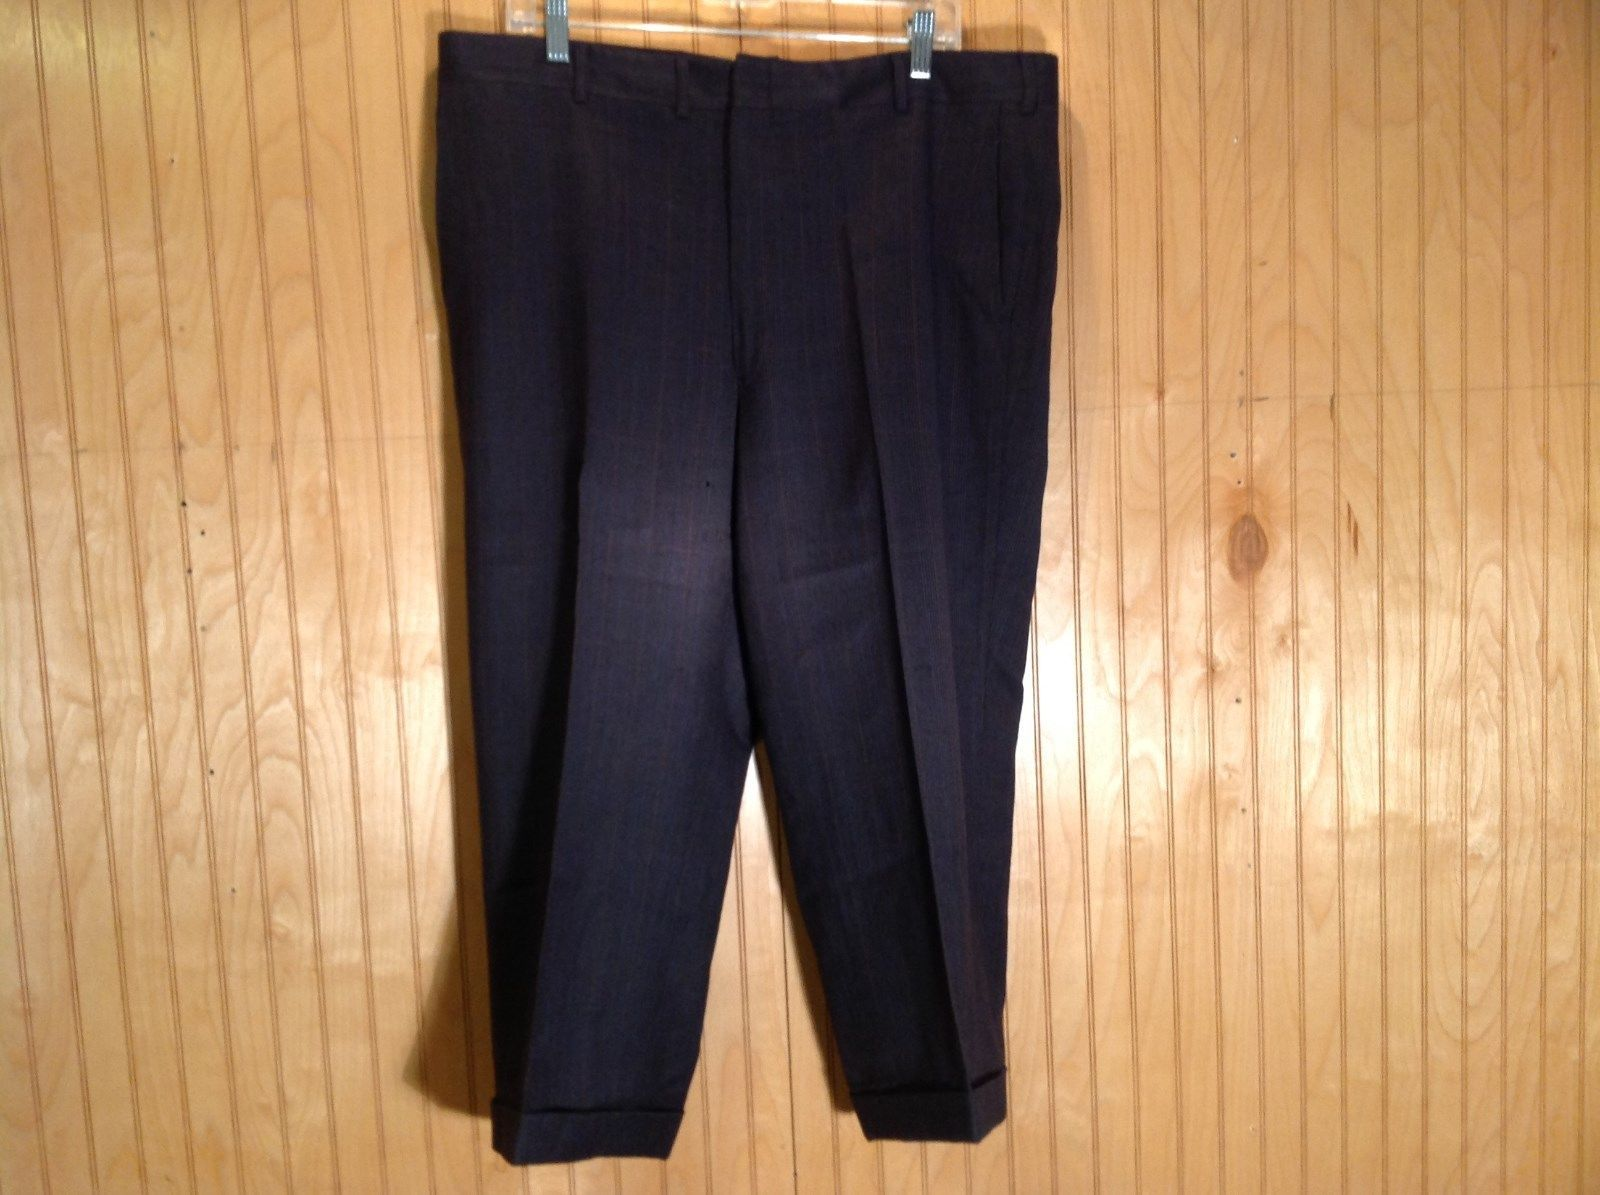 Black Pleated Dress Pants with Plaid Pattern Size 40 Tags Removed